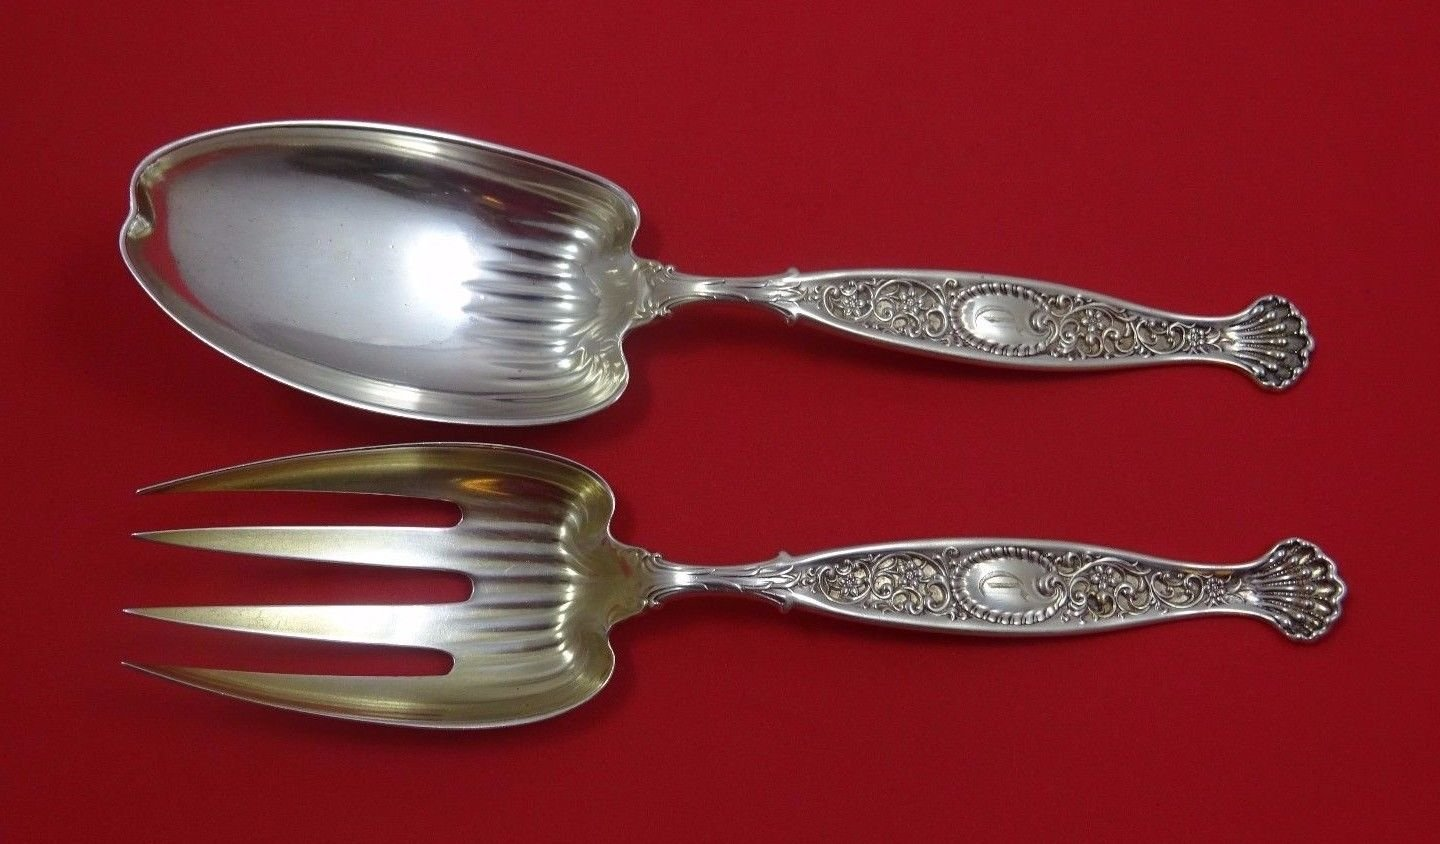 Hyperion by Whiting Sterling Silver Salad Serving Set 2pc All Sterling 9 1/4""